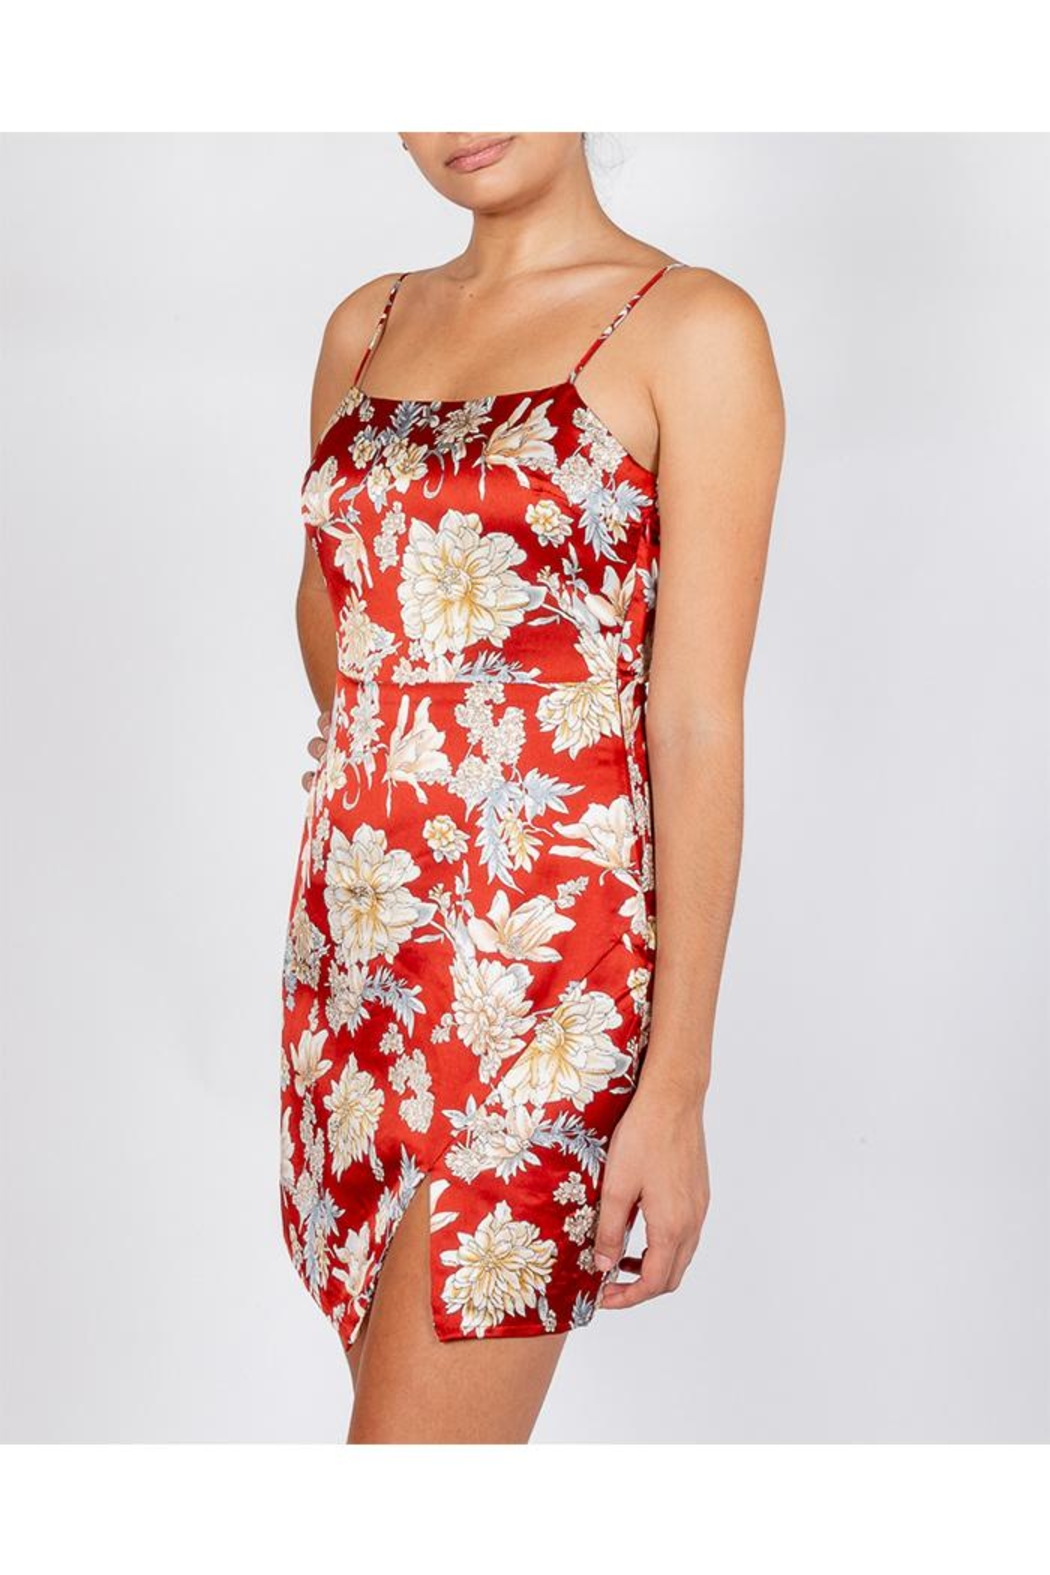 Cotton Candy Rust Floral Dress - Front Full Image